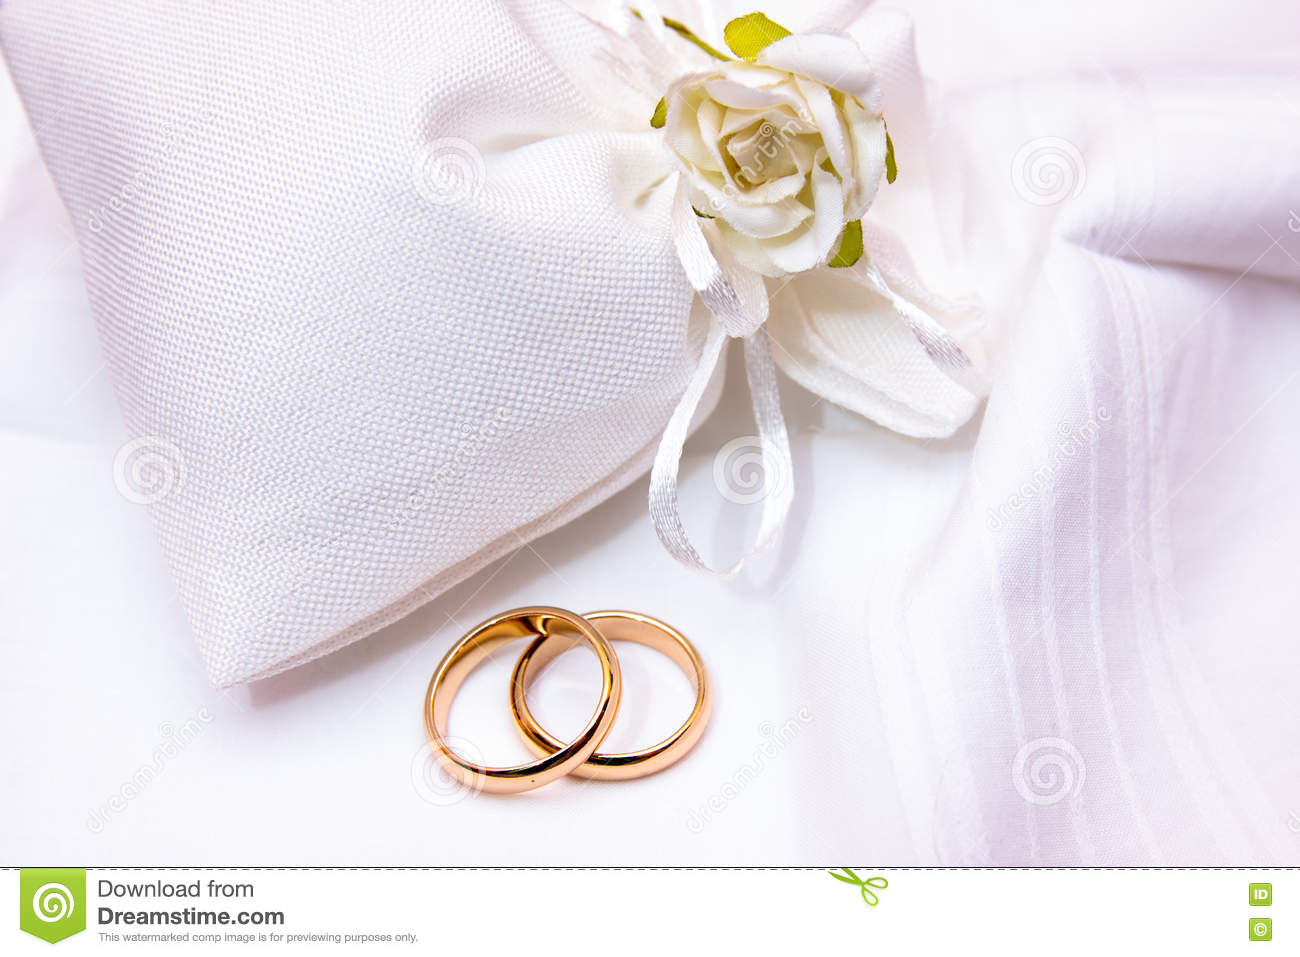 Wedding Rings In A Cloth Bag Stock Photo Image Of Gold Married